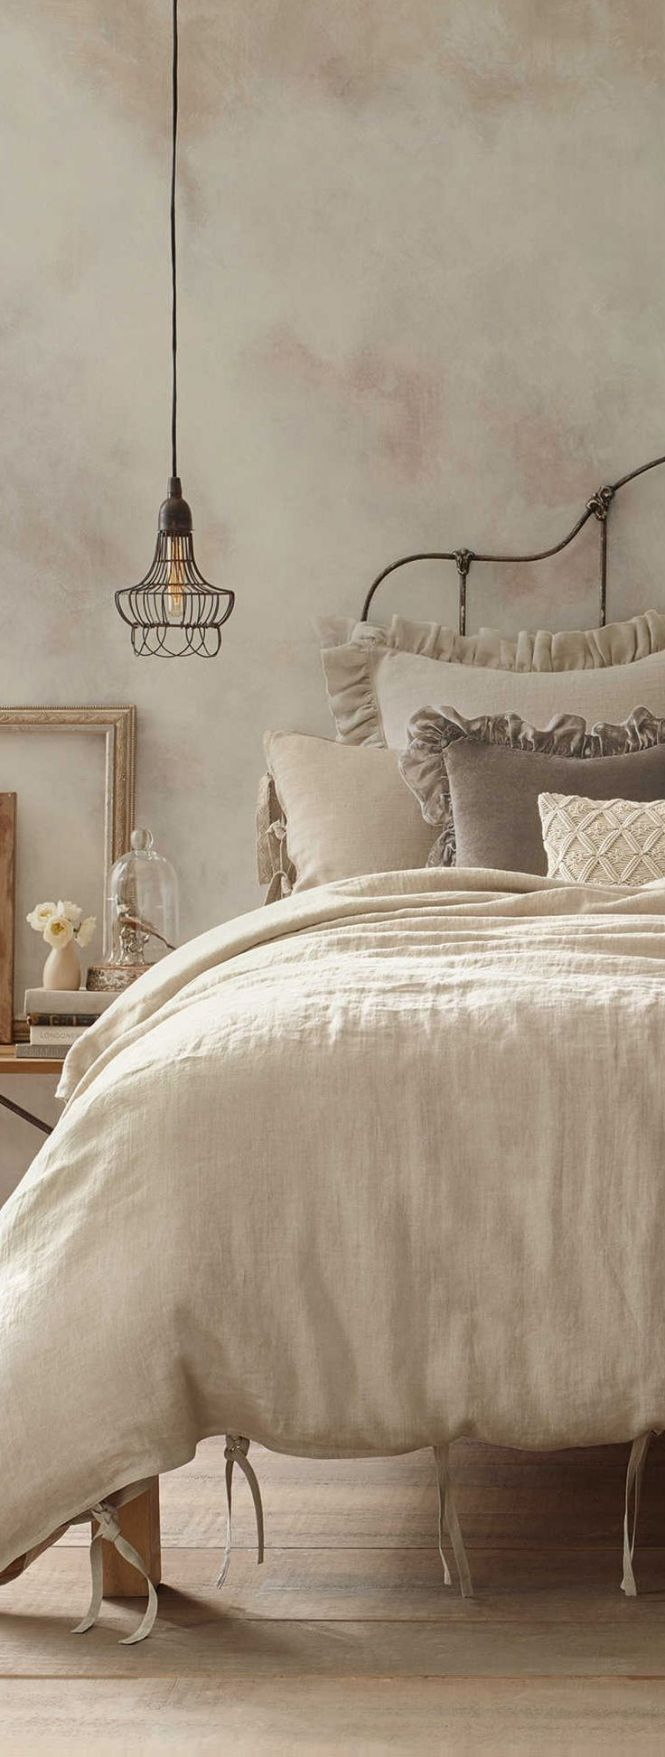 describe your bedroom in french bedroom style ideas 78 best ideas about french bedrooms bedskirts